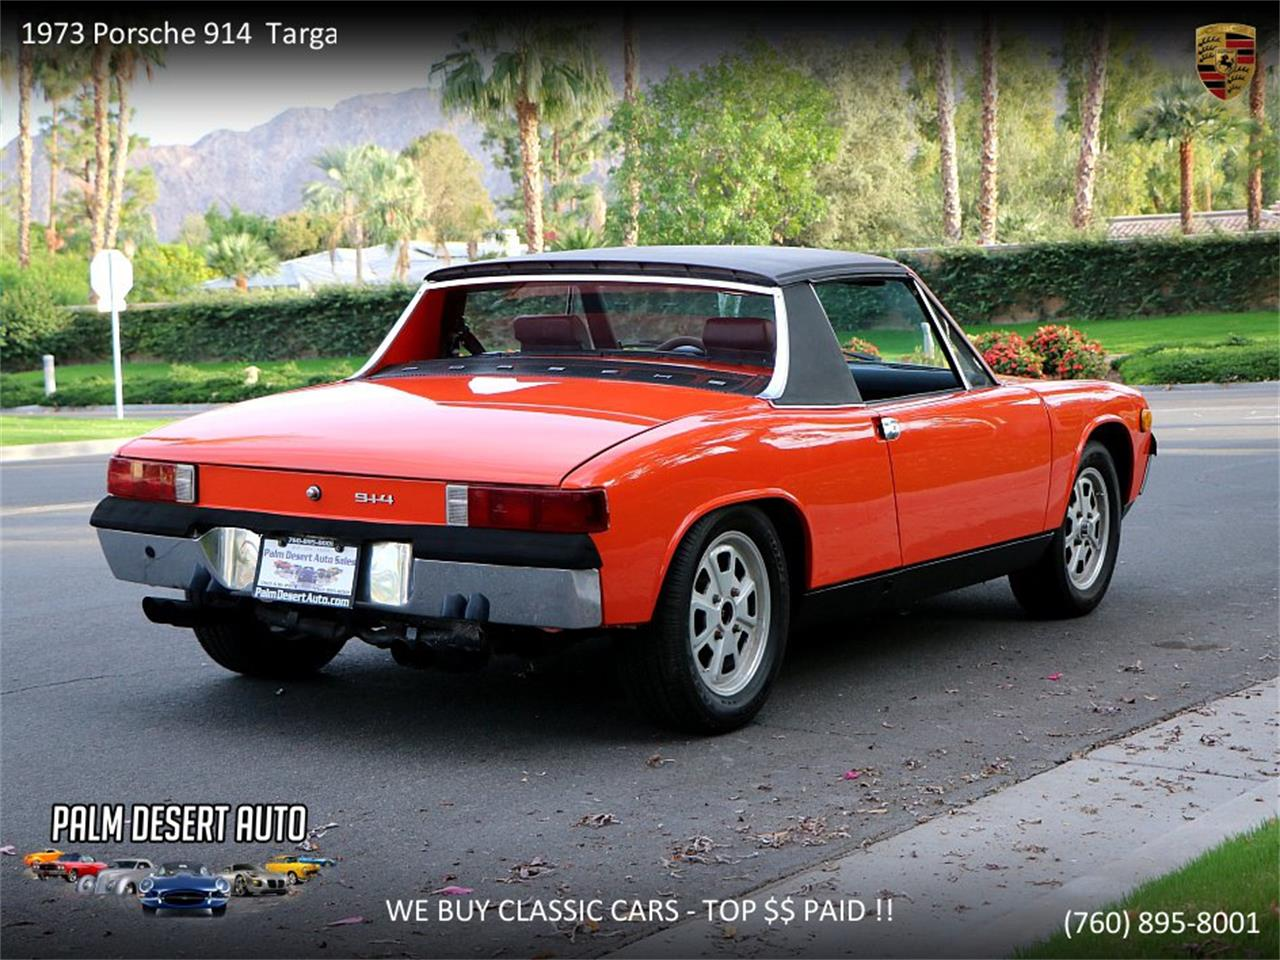 Large Picture of '73 914 located in Palm Desert  California - $17,450.00 Offered by Palm Desert Auto - PFF8